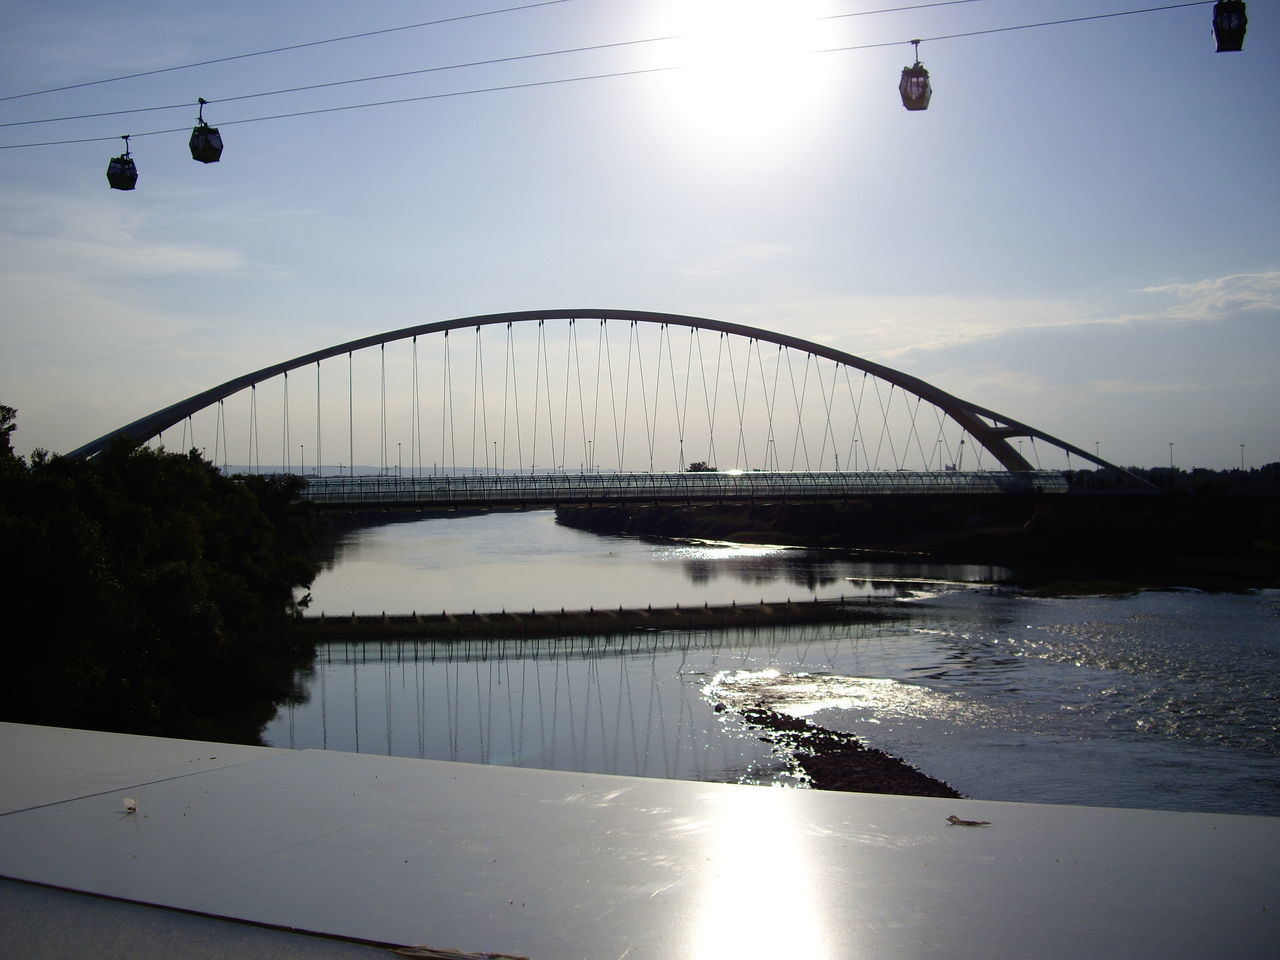 El río Ebro en 2008, el puente del Tercer Milenio las Góndolas del teleférico y el sol al atardecer. 2008 Architecture Bridge - Man Made Structure City Day Eddl Outdoors Reflection River Sky Sun Sunlight Water